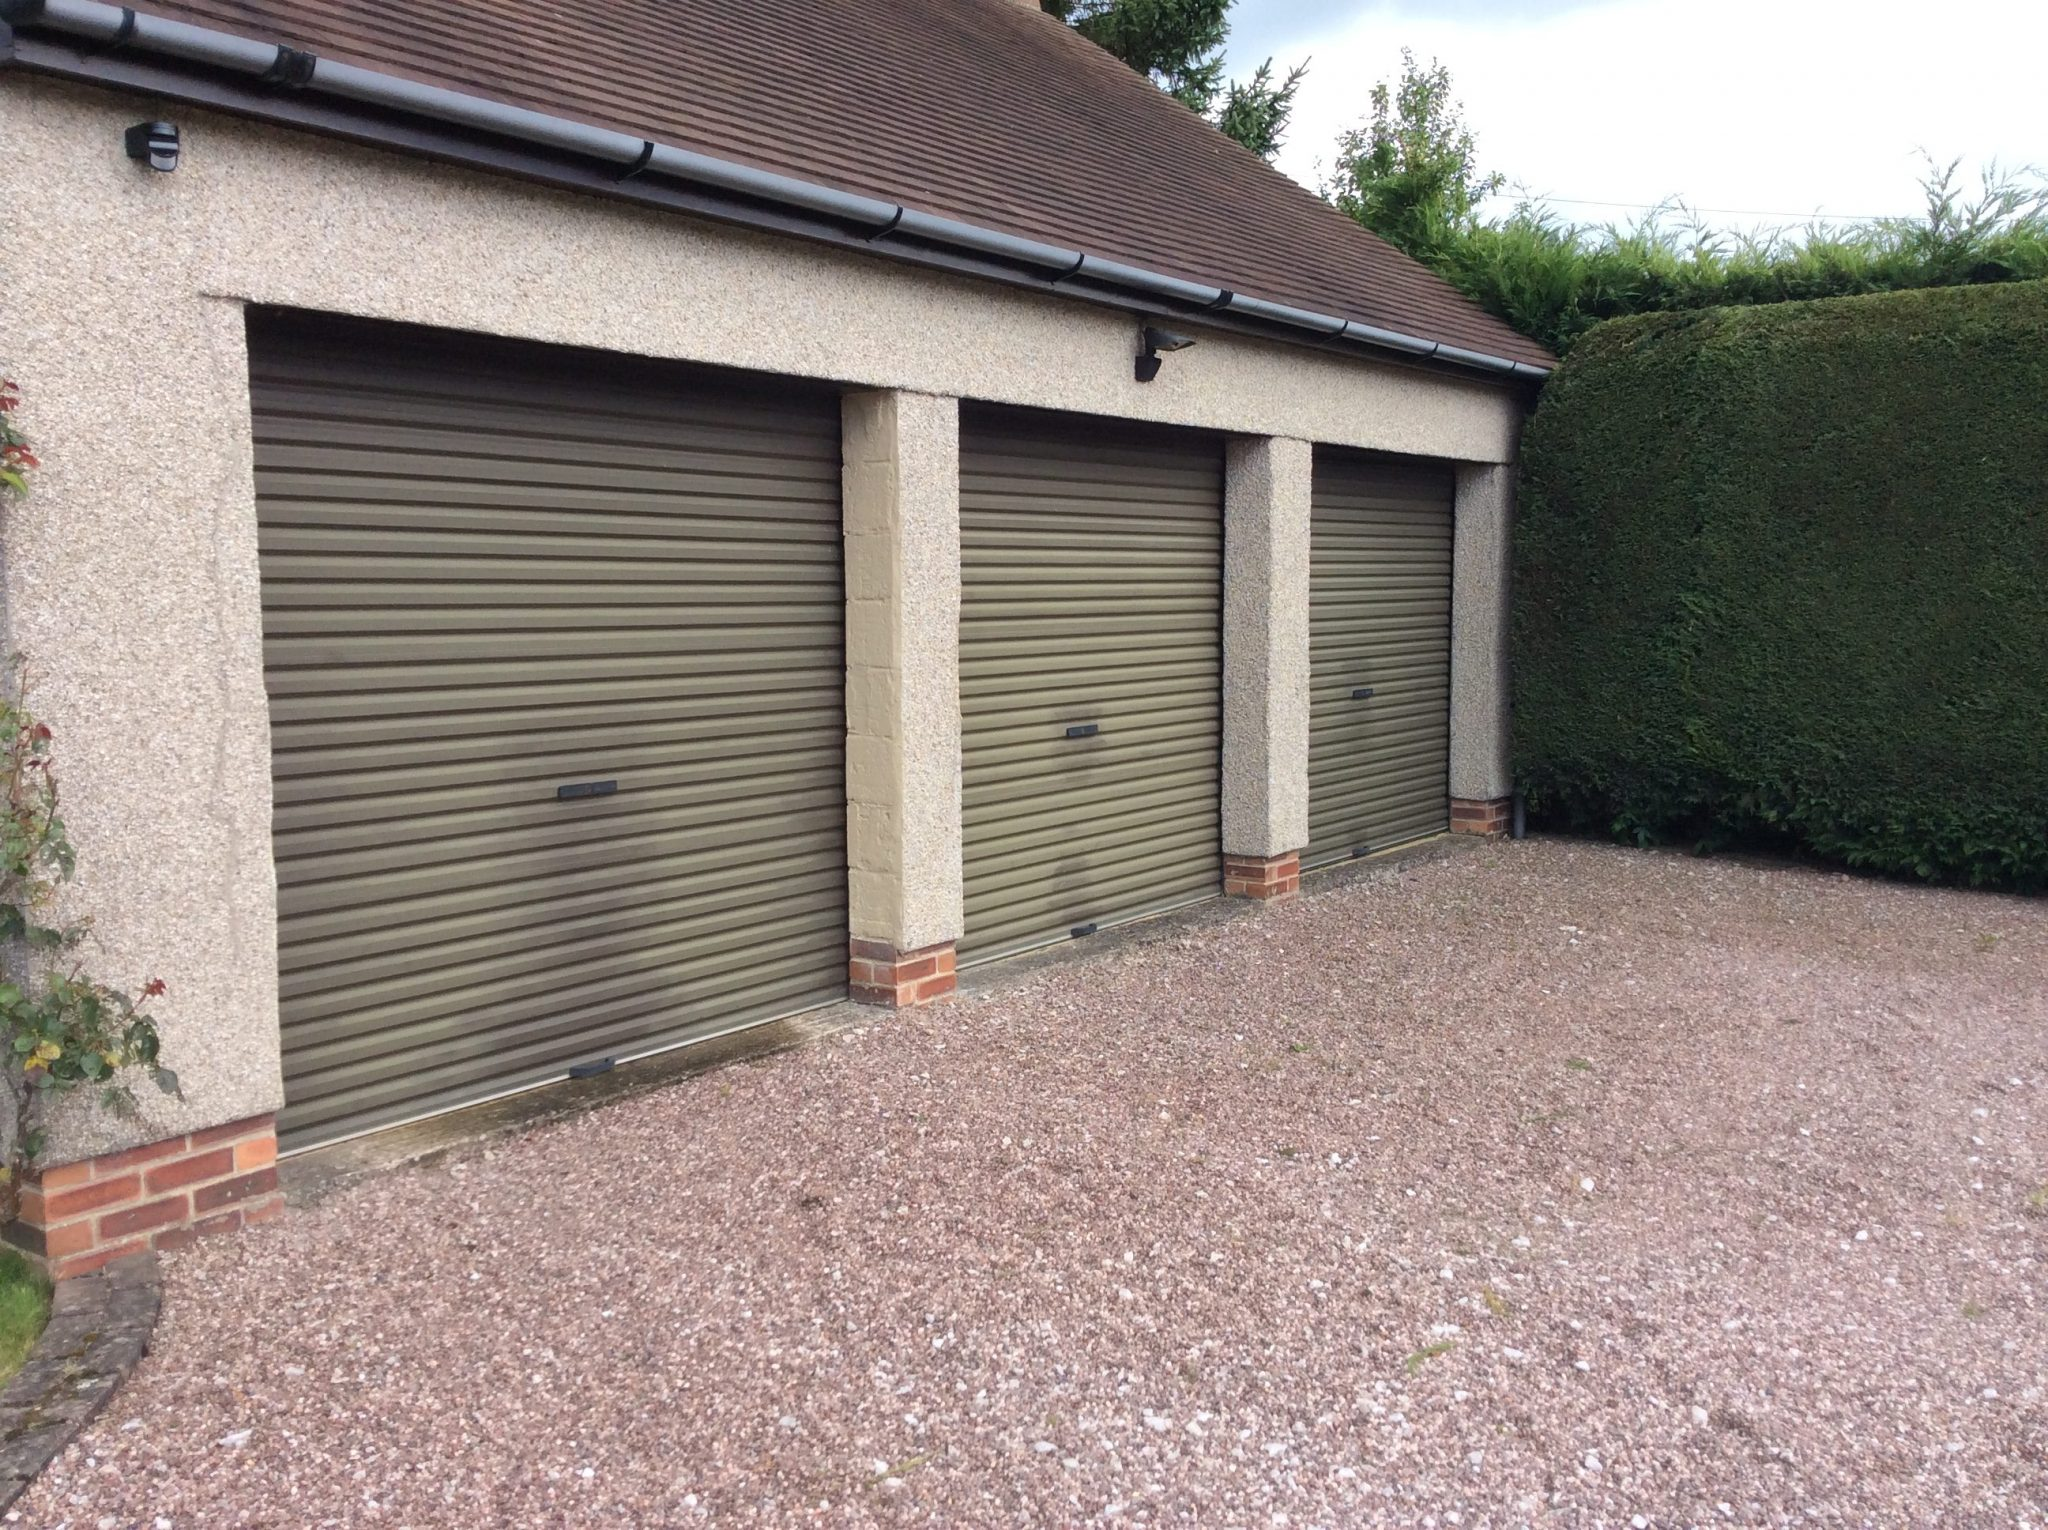 The Doors Are Of The Roller Shutter Variety And Were Installed In 1991.  They Are South Facing And Had Been Faded Badly With Some WD40 Staining  Around The ...